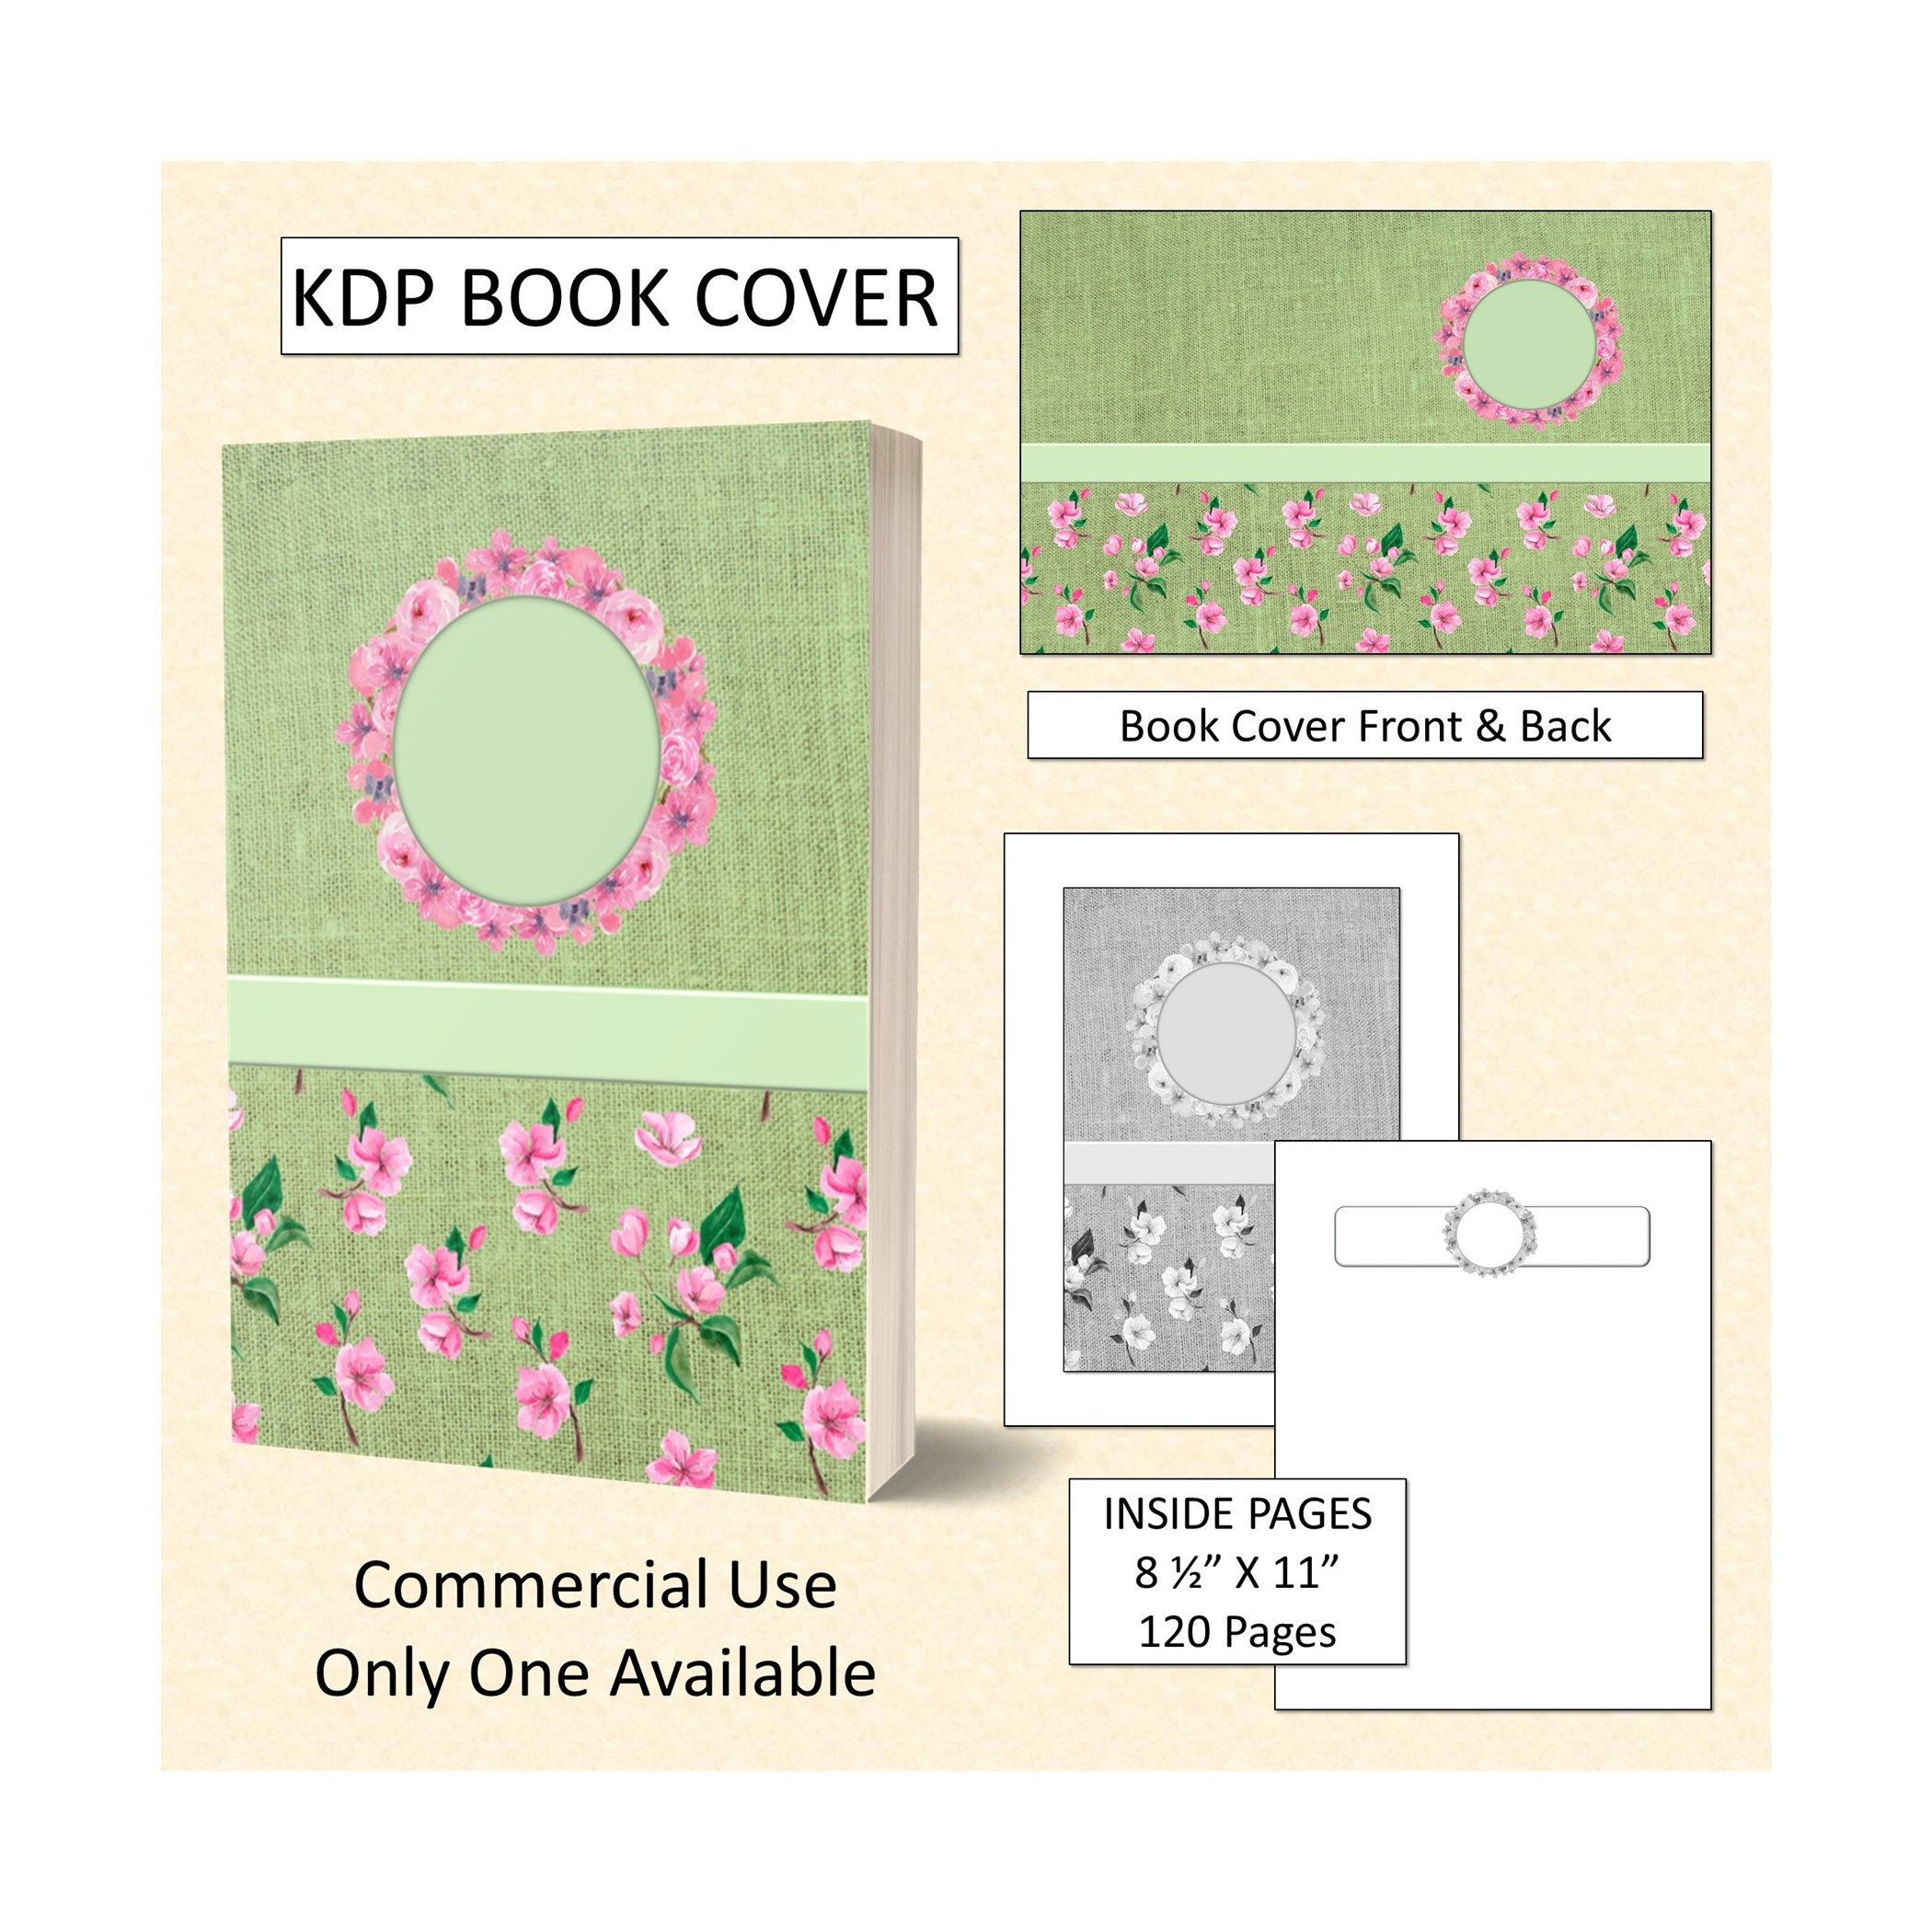 Green Floral Theme Cover Design Kdp Book Cover Kindle Cover Cover Design Diary Cover Design Kindle Cover